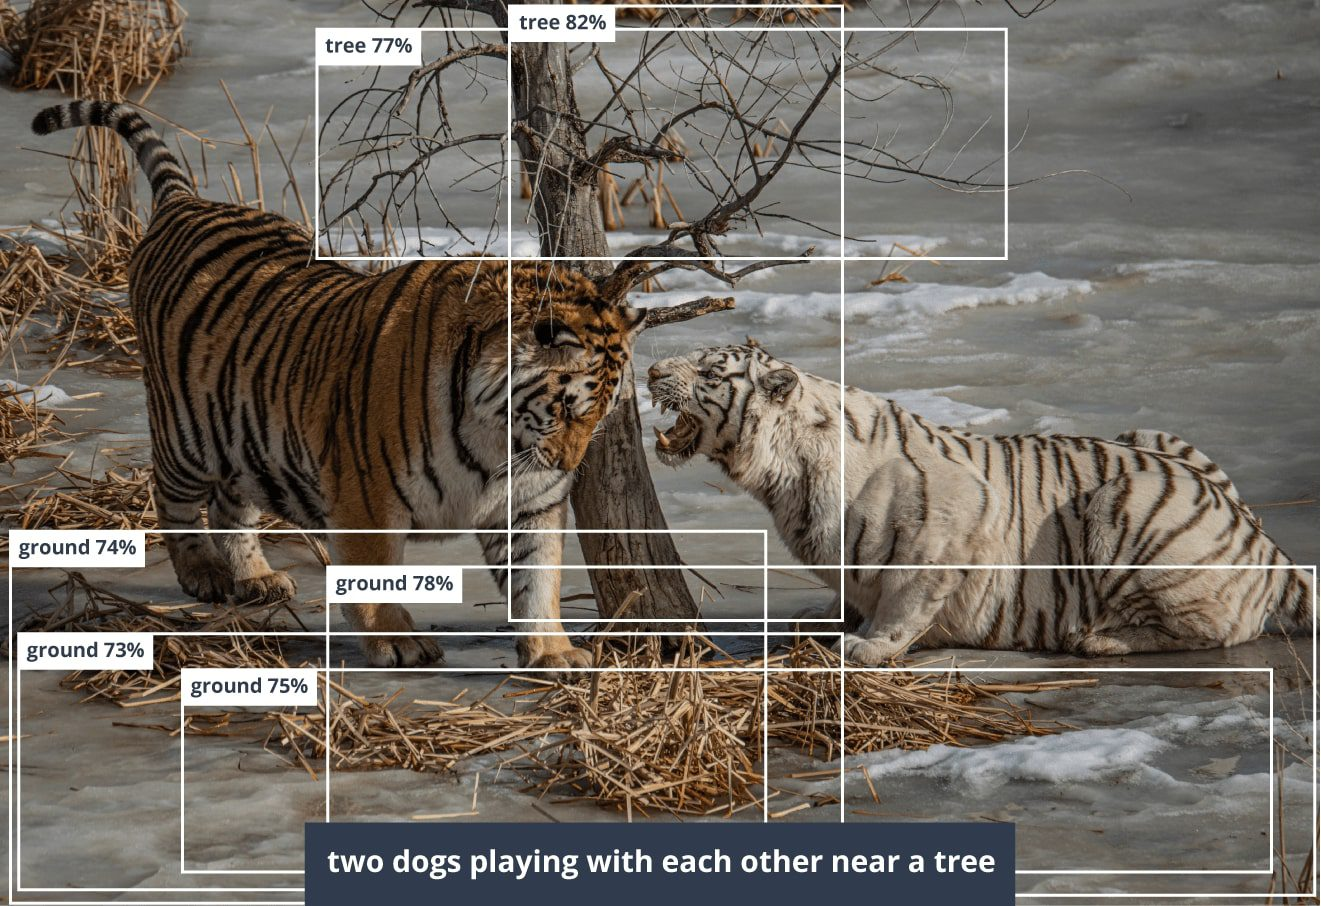 Neural Networks operate captioning unknown objects